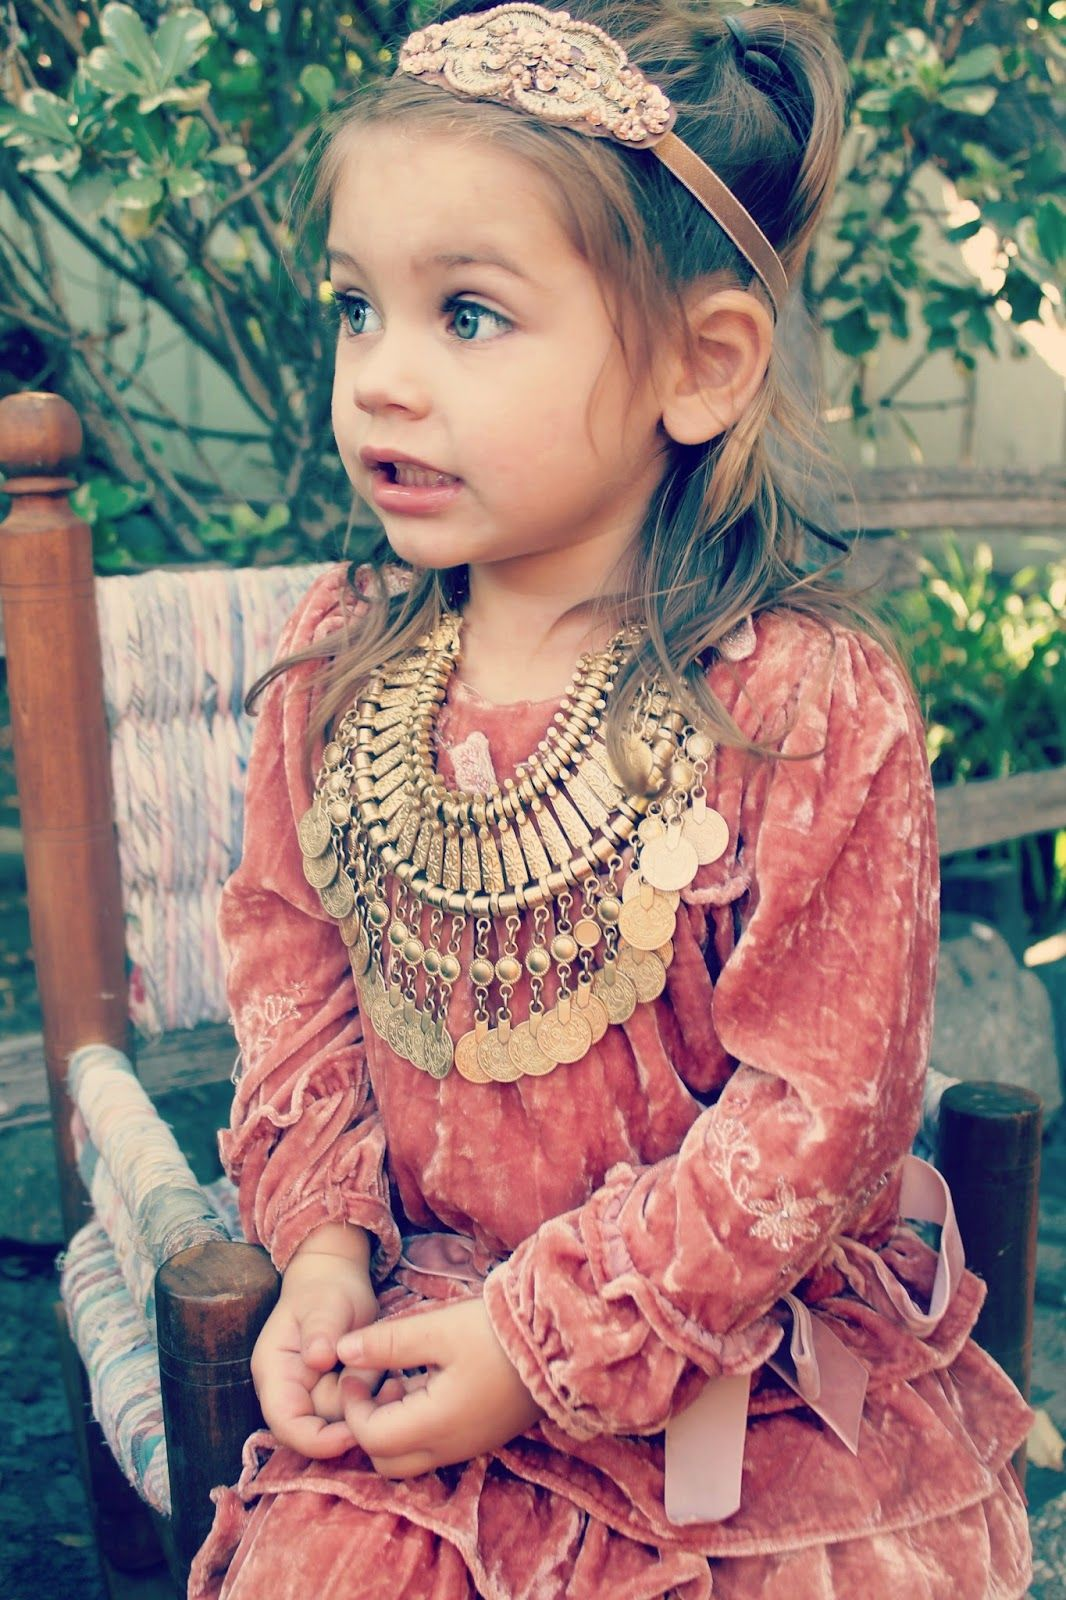 dafe222c3a4d Easter Dresses for your little ladies. boho babies, mini models, trendy kids,  kids in style, stylish kids, fashion, kids fashion, kids lookbook, ...